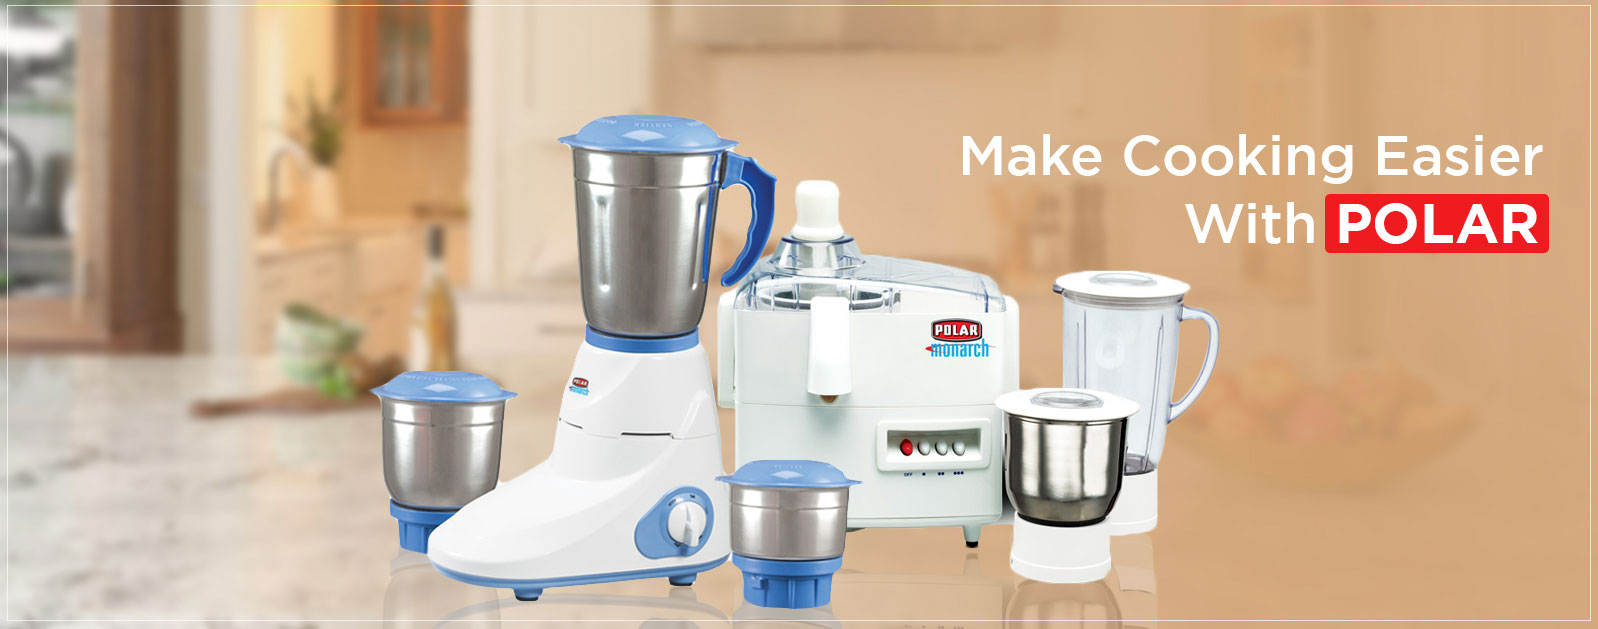 Polar India Home Appliances Manufacturer Company In India